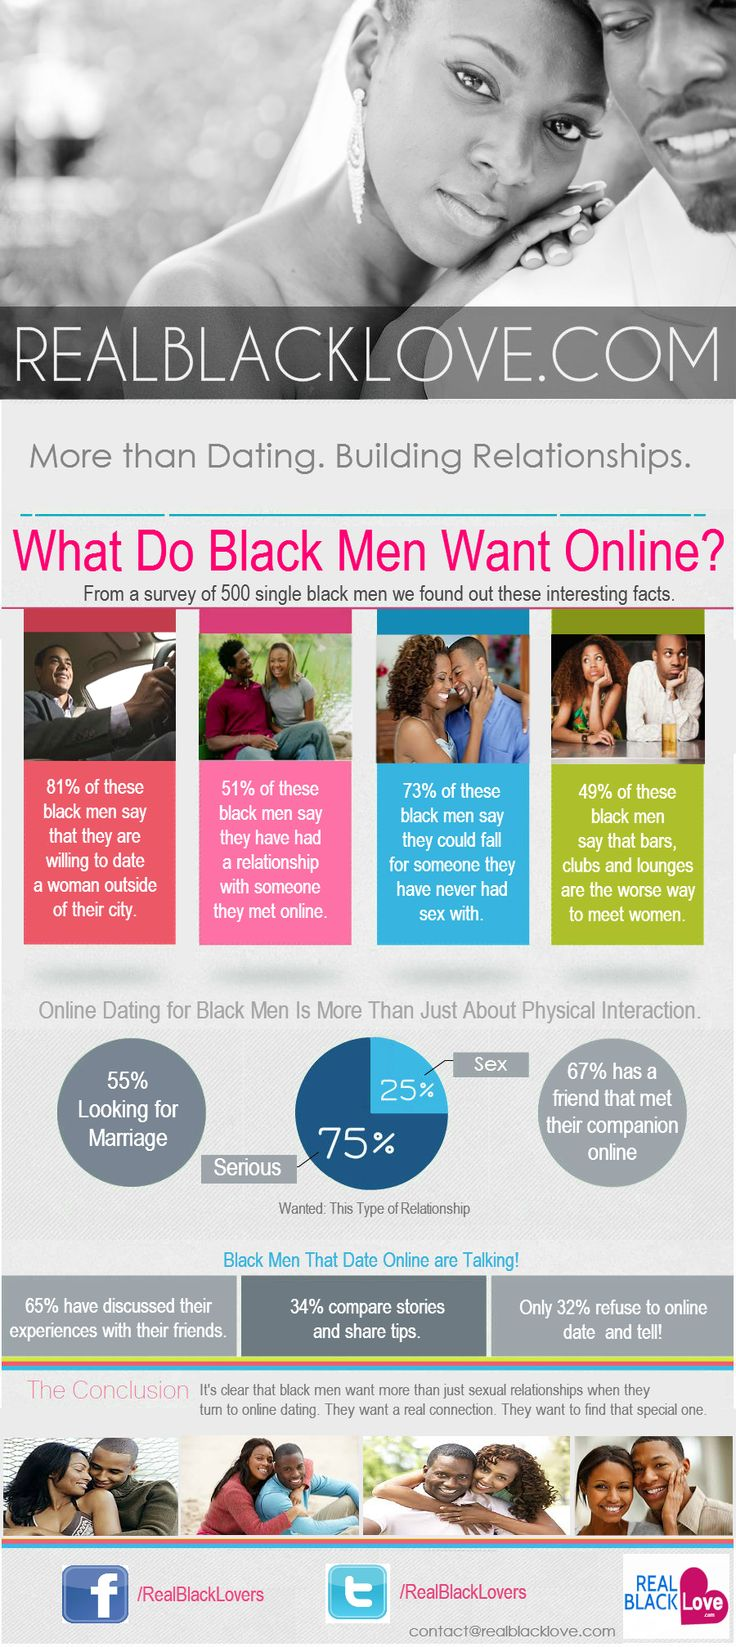 dixon black single men Home to realblacklove rbl the #1 black dating app for black singles and club rbl matchmaking with matchmaker joseph dixon join the rbl movement today the largest network of real singles making real connections.